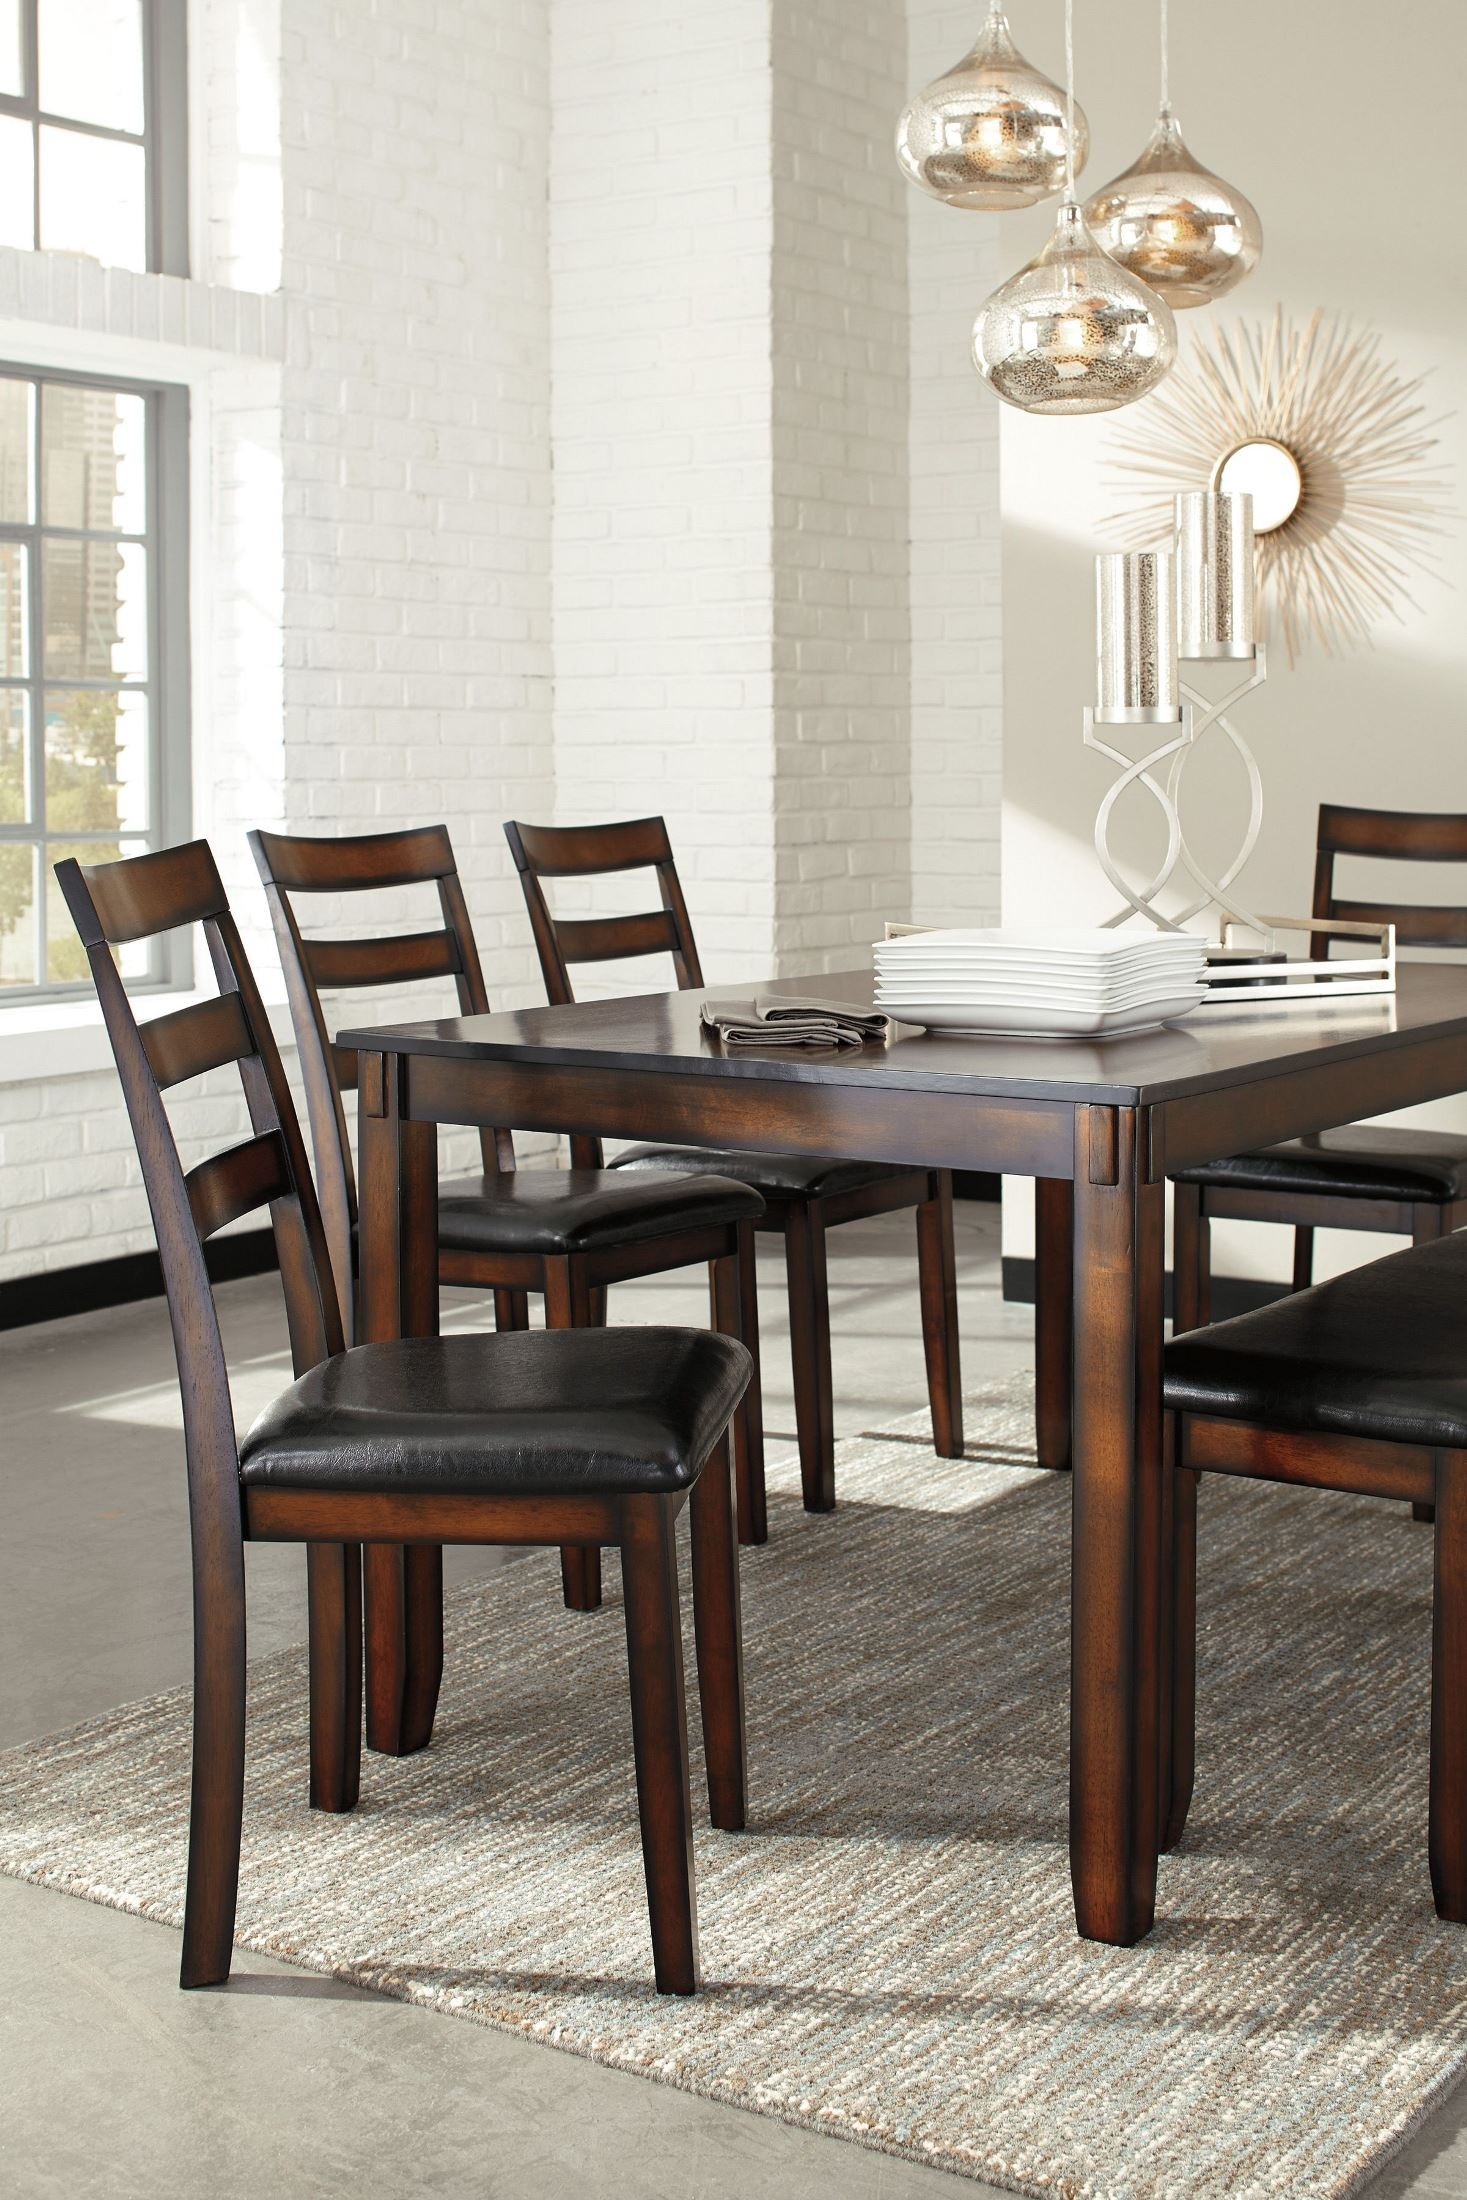 Coviar Brown 6 Piece Dining Room Set, D385-325, Ashley